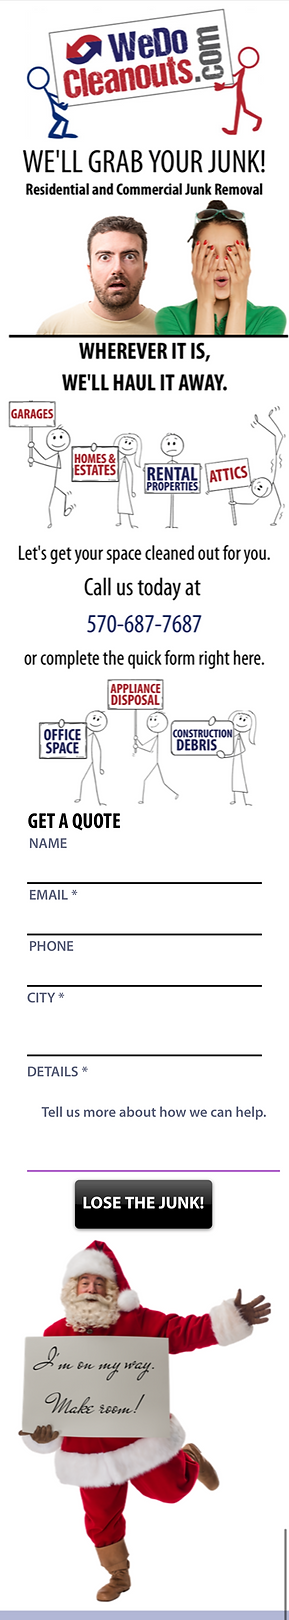 MOBILE LANDING PAGE.png